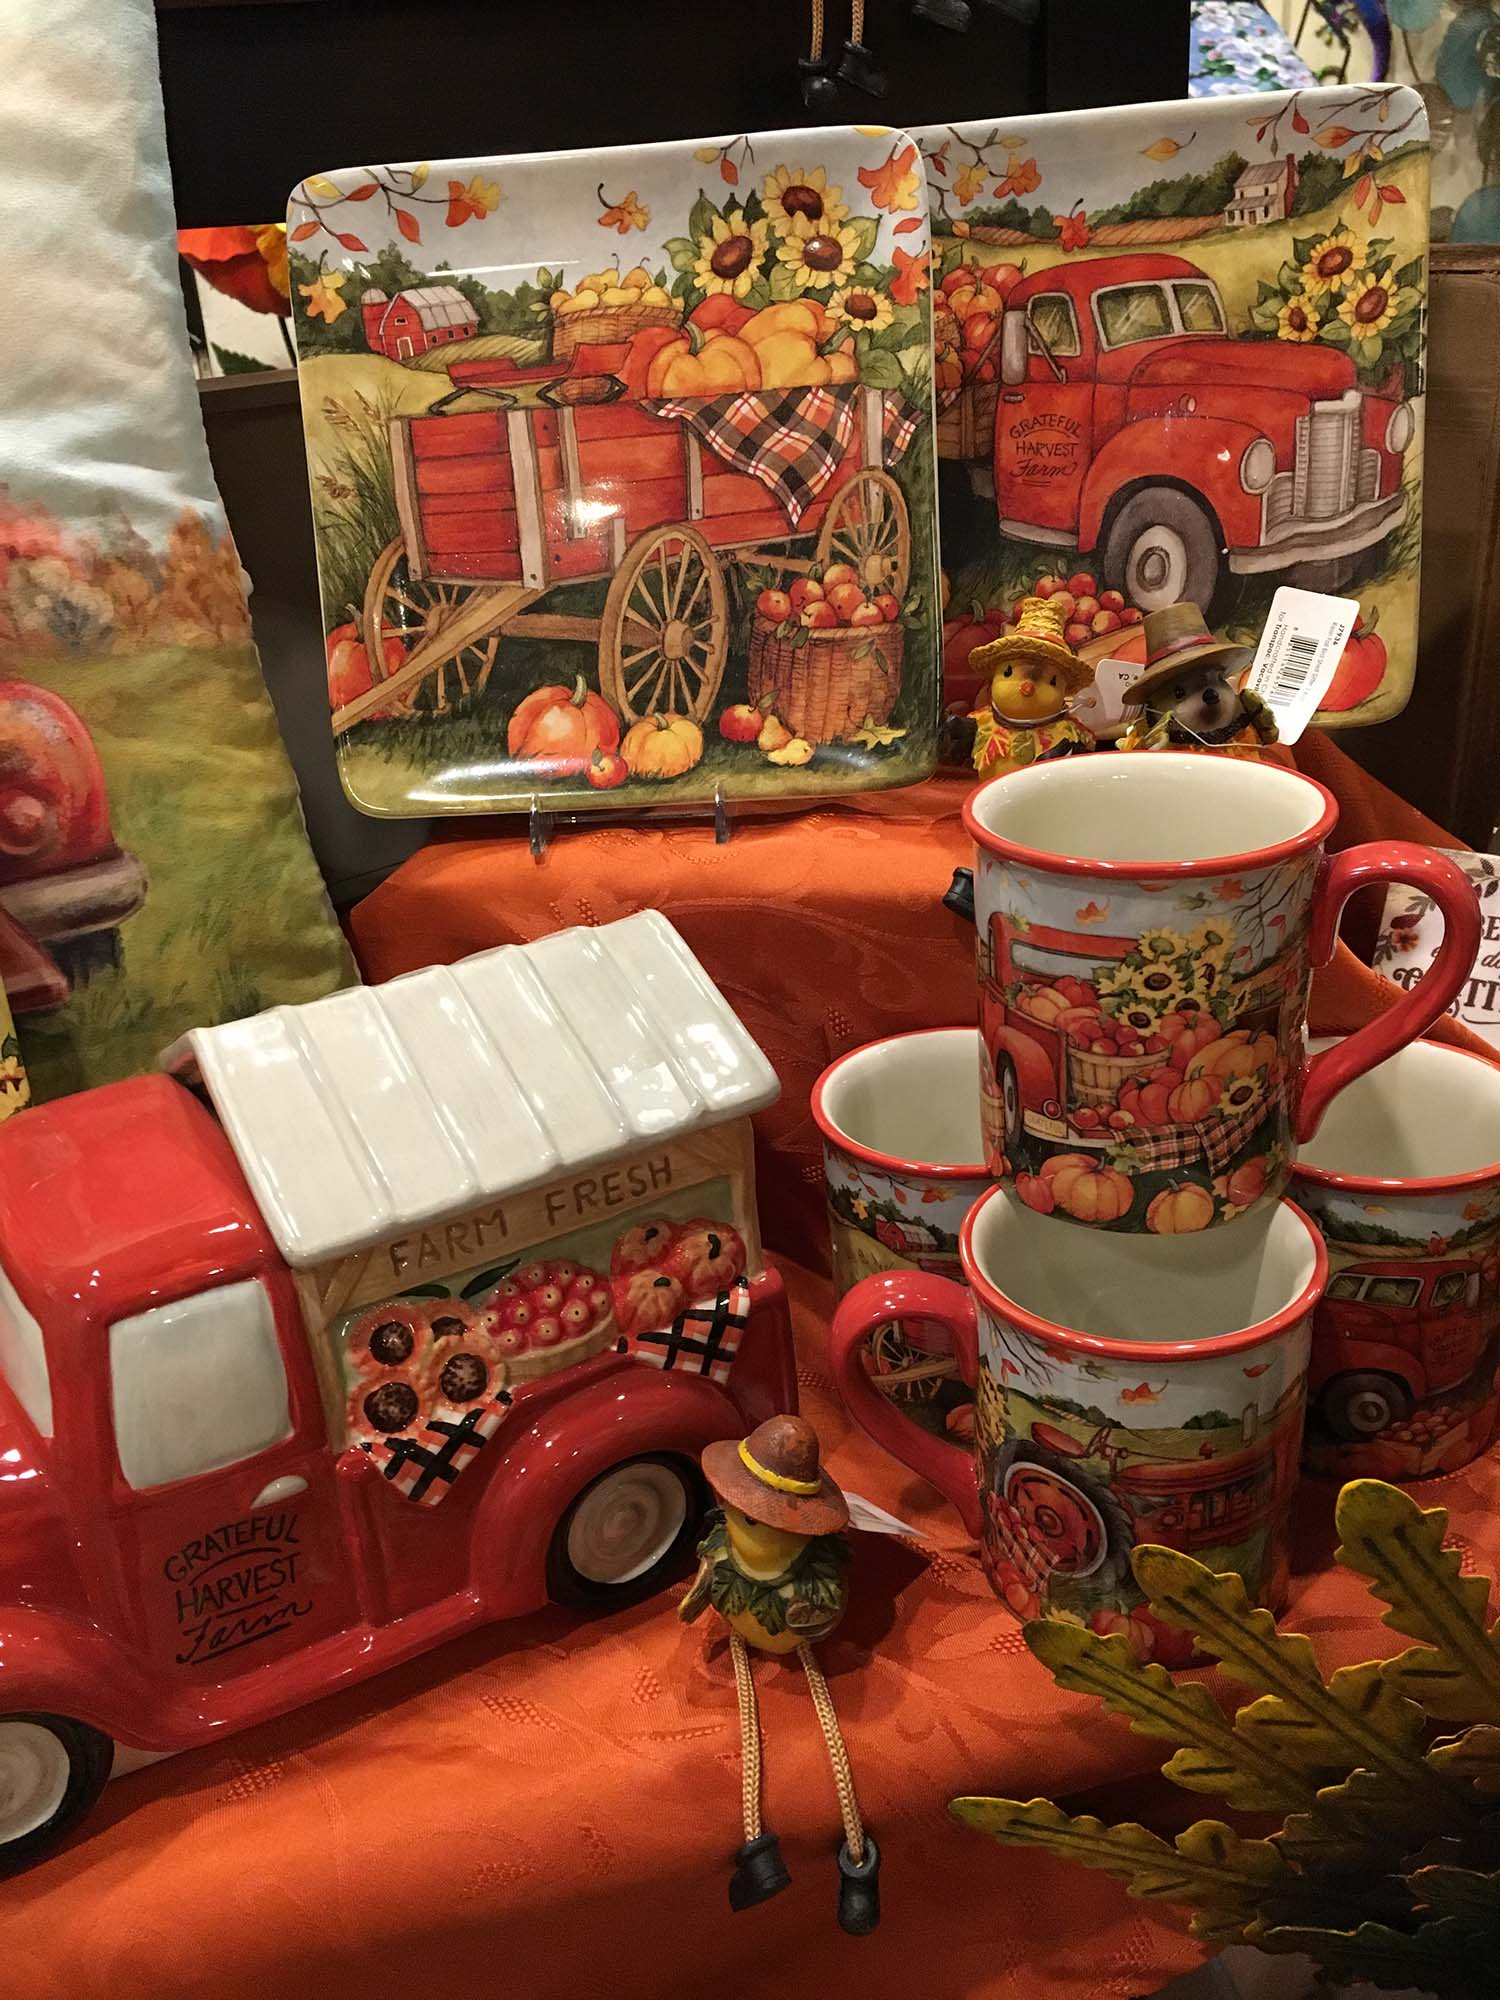 Fireside Gift Shops fall decor